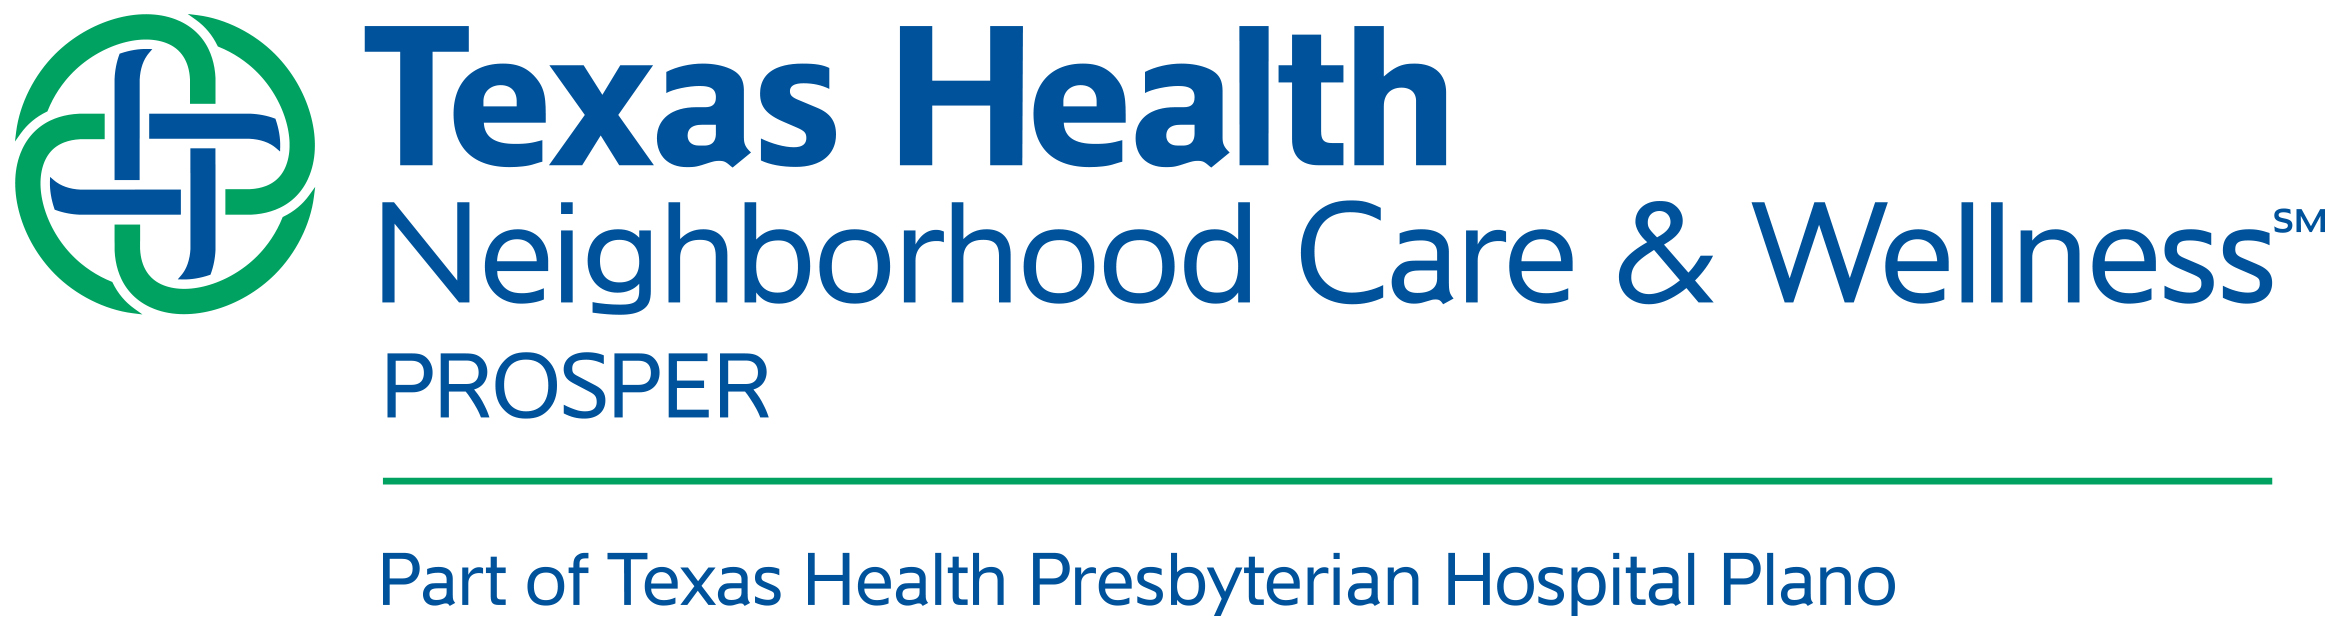 TH - Neighborhood Care and Wellness - Prosper - color.jpg